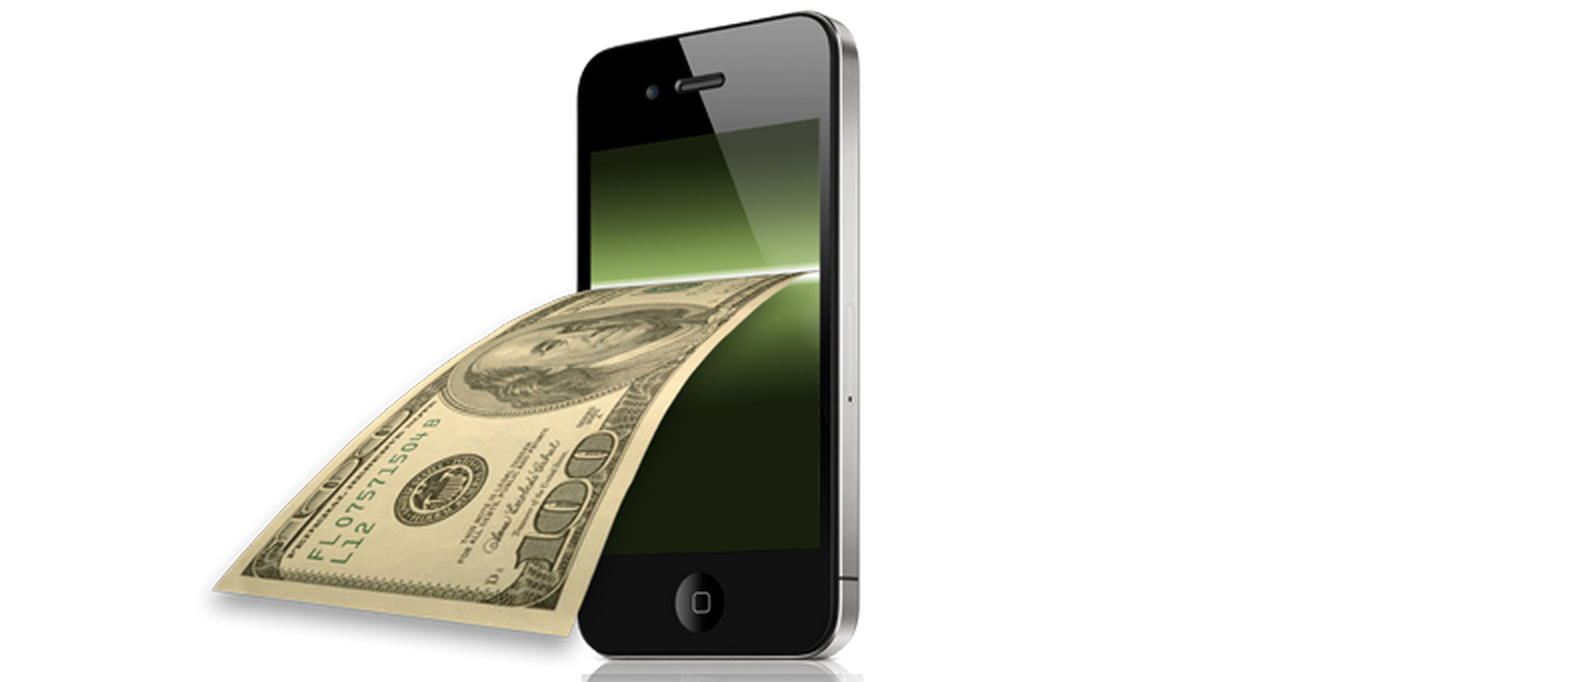 Top 3 Mobile Apps That Make You Money